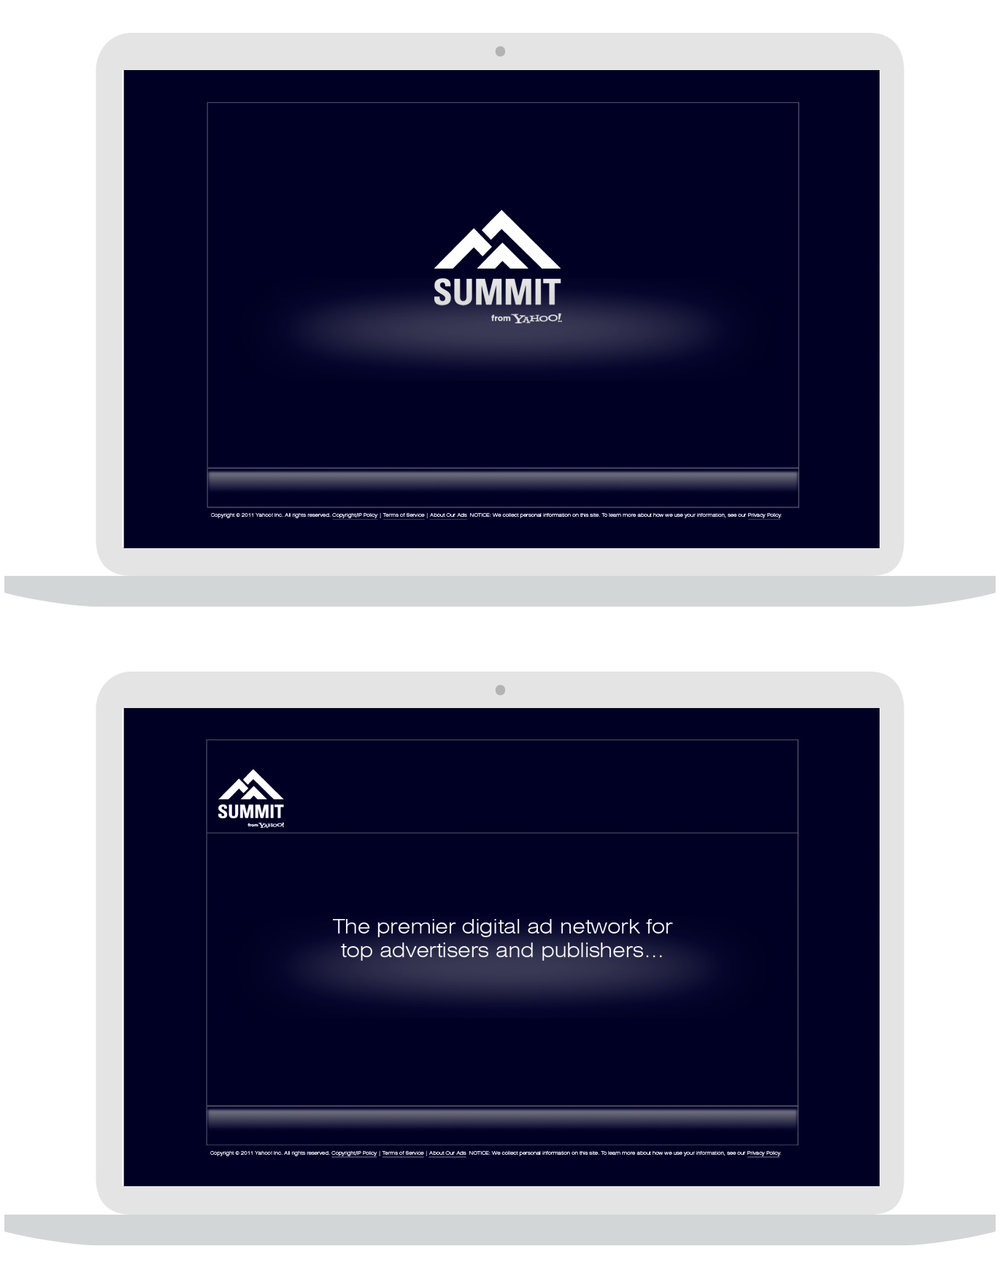 summit-teaser-website_01.jpg